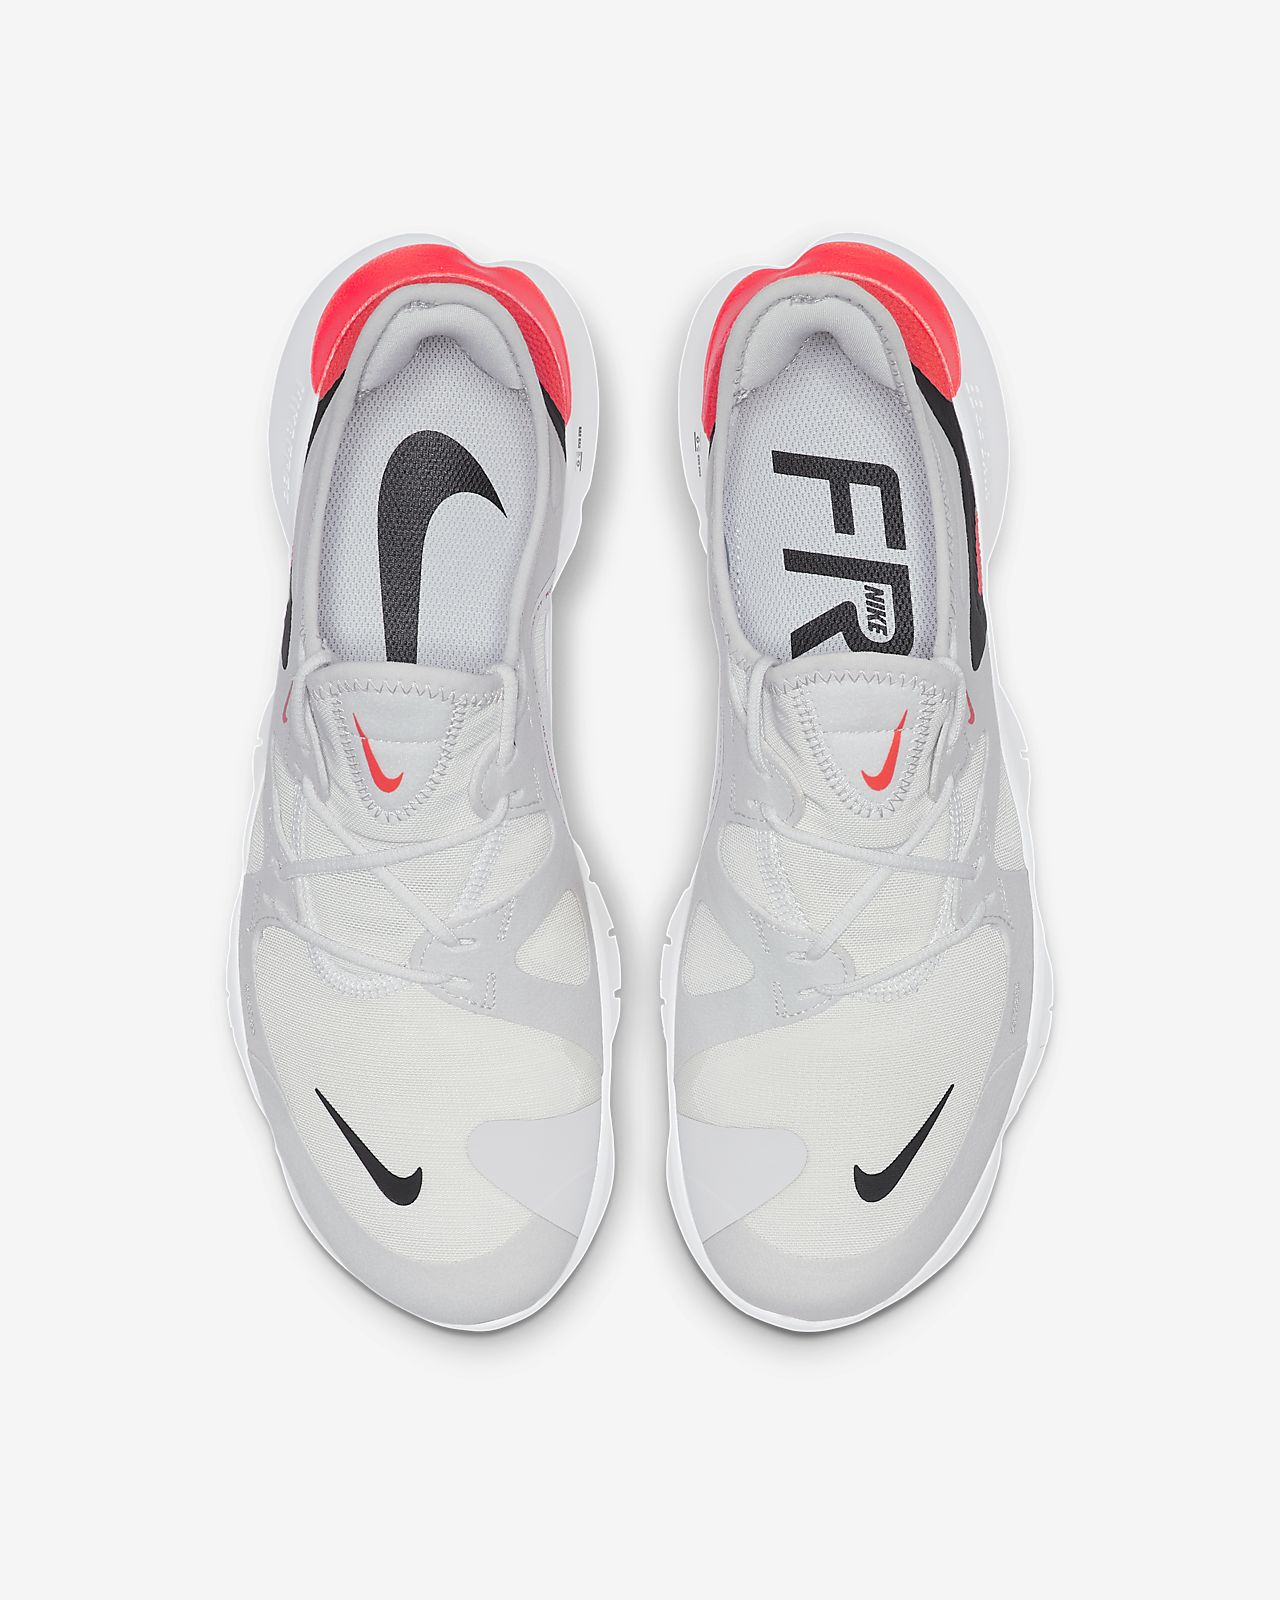 bd2580d11984 Nike Free RN 5.0 Men s Running Shoe. Nike.com GB